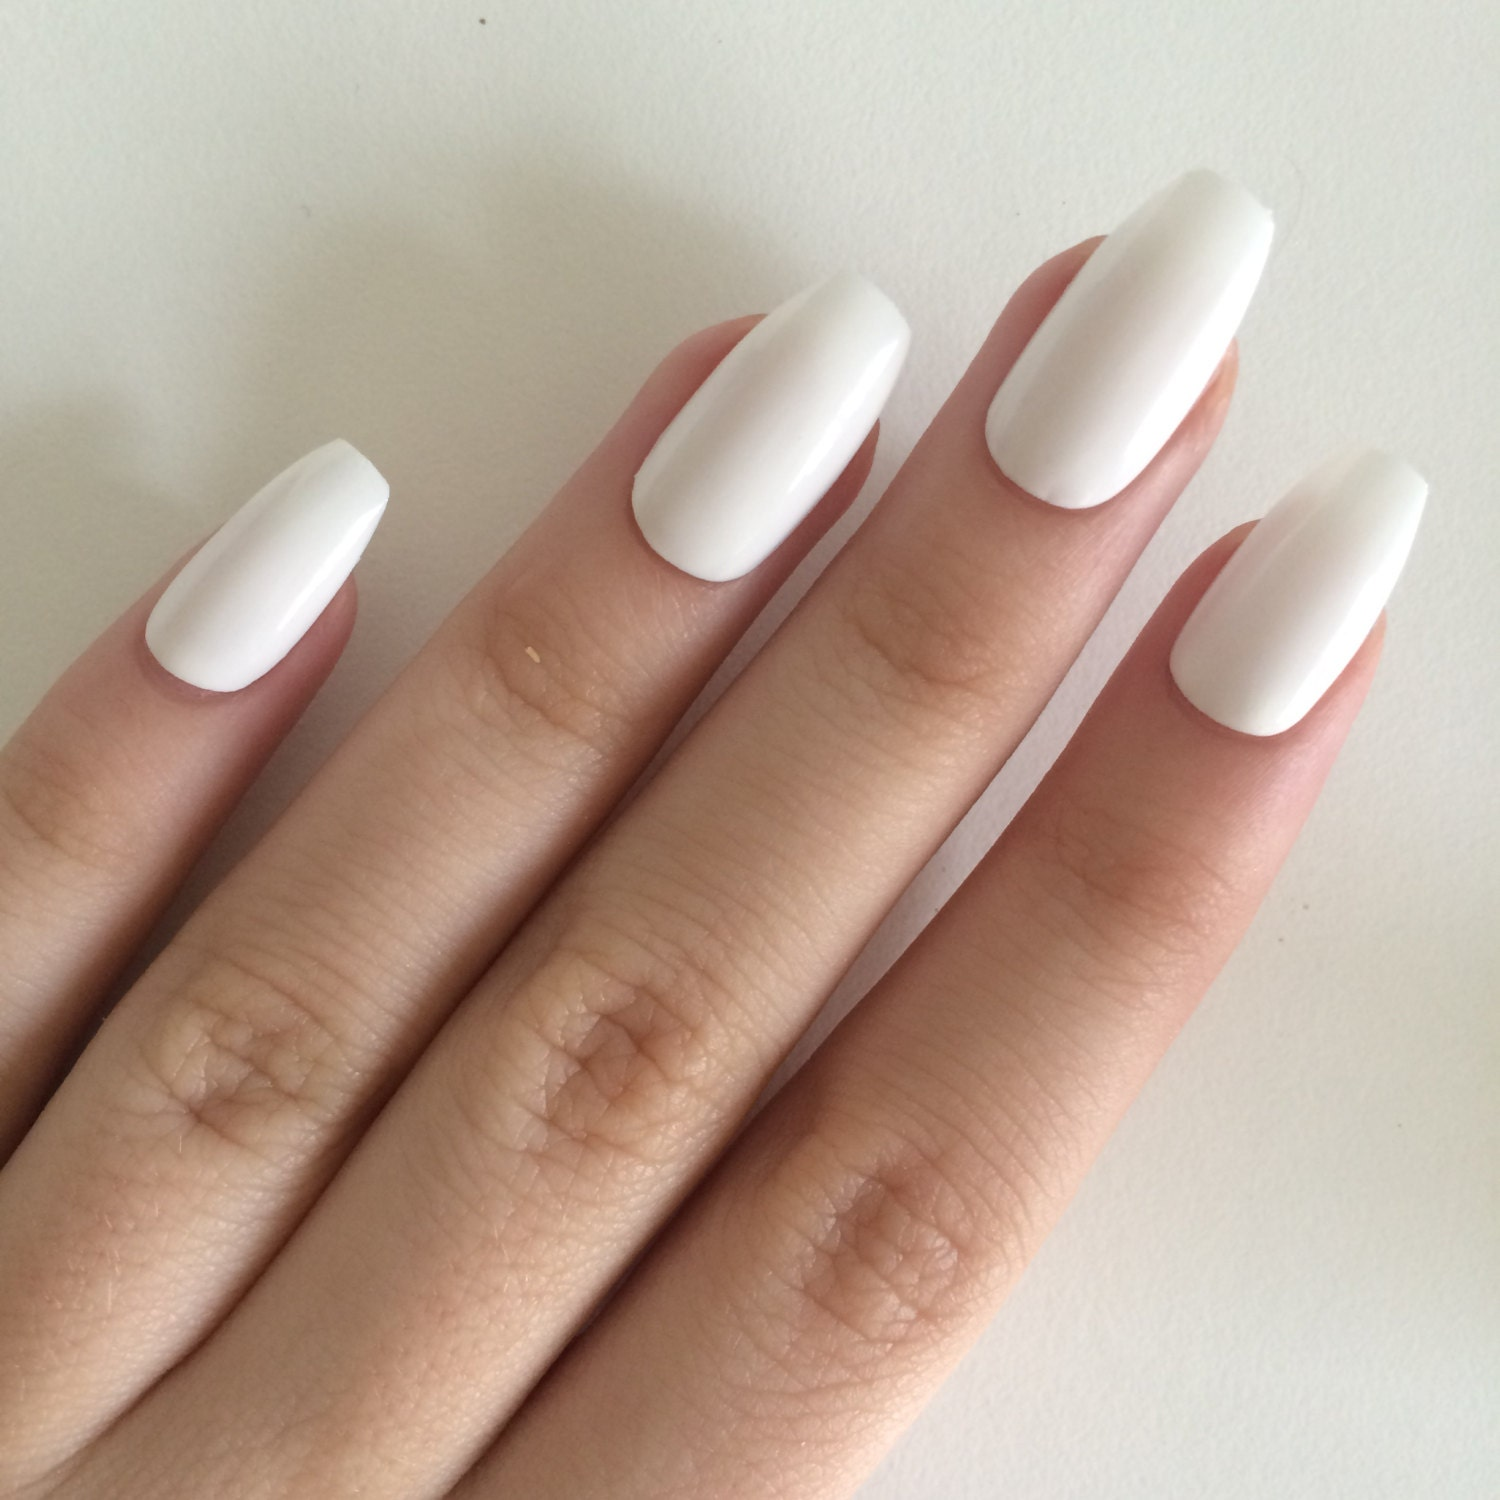 Fake Nails: Gloss White Coffin Nails Hand Painted Acrylic Nails By